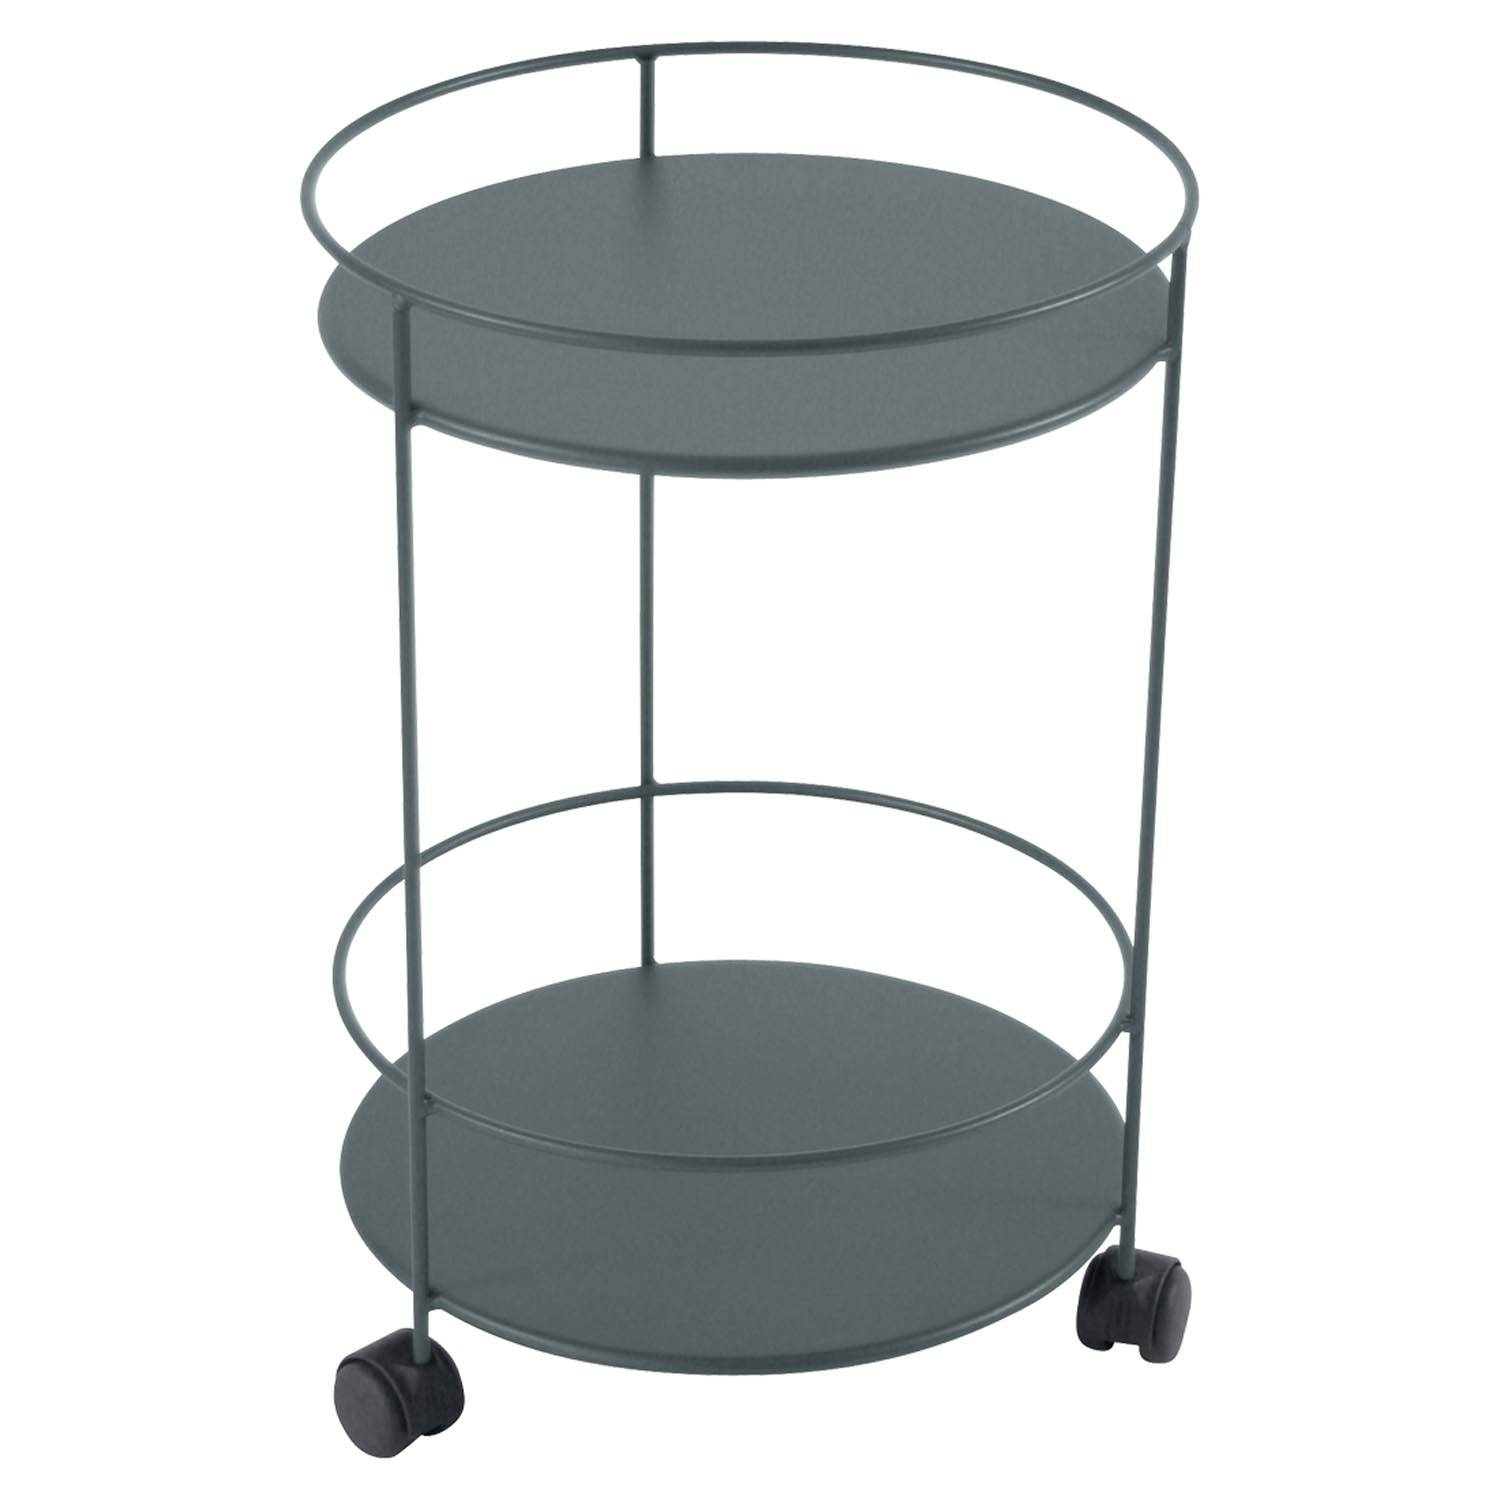 Fermob Small Table Perforated Ø40, Storm grey